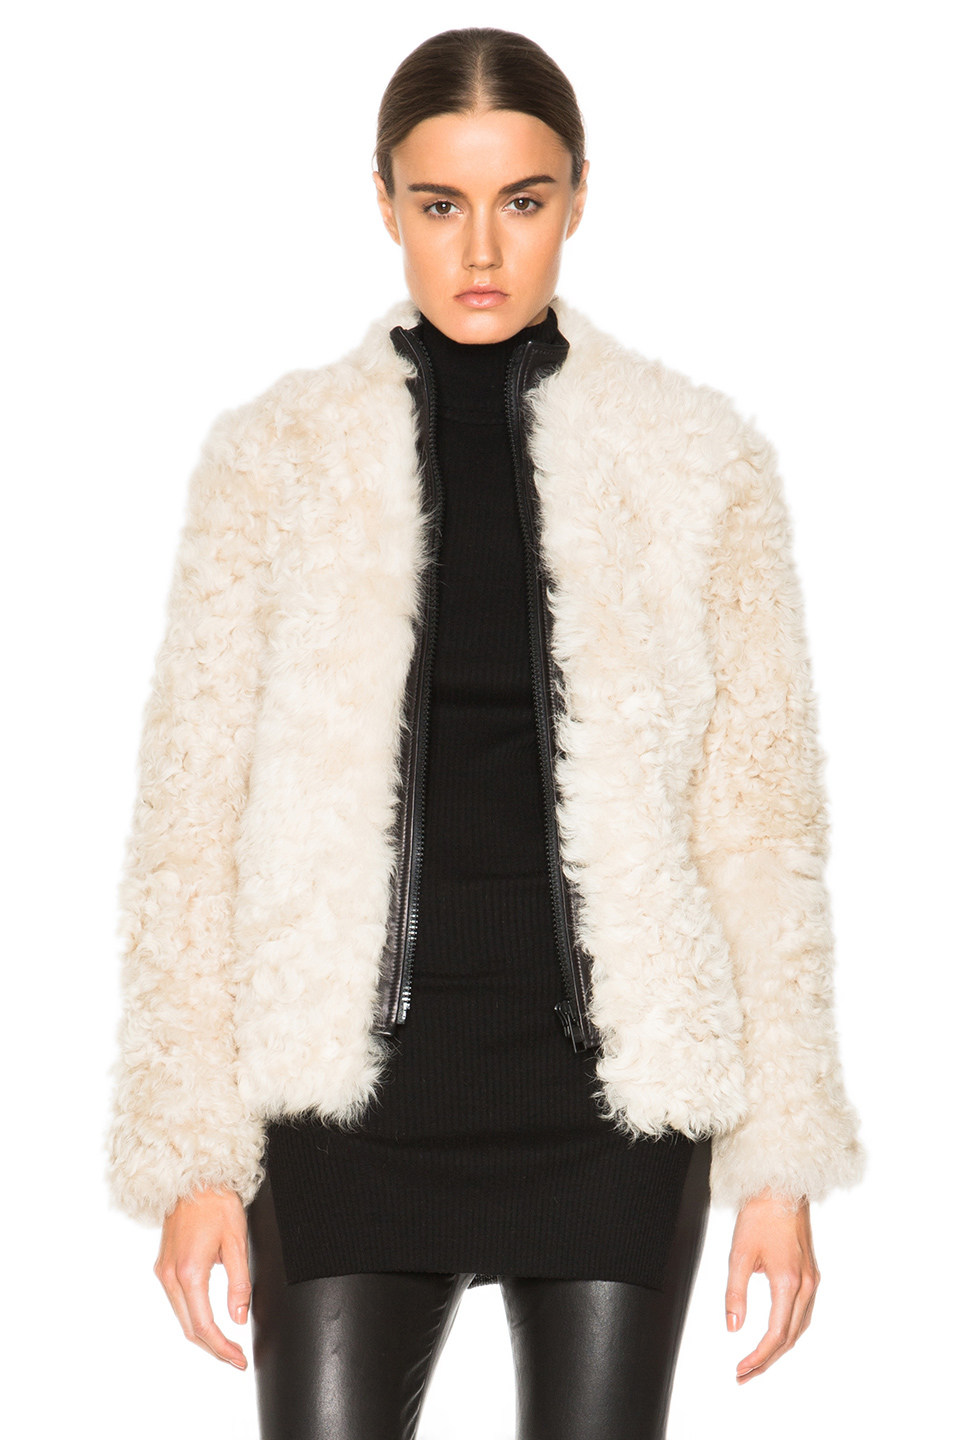 Helmut lang Lamb Shearling Jacket in White | Lyst